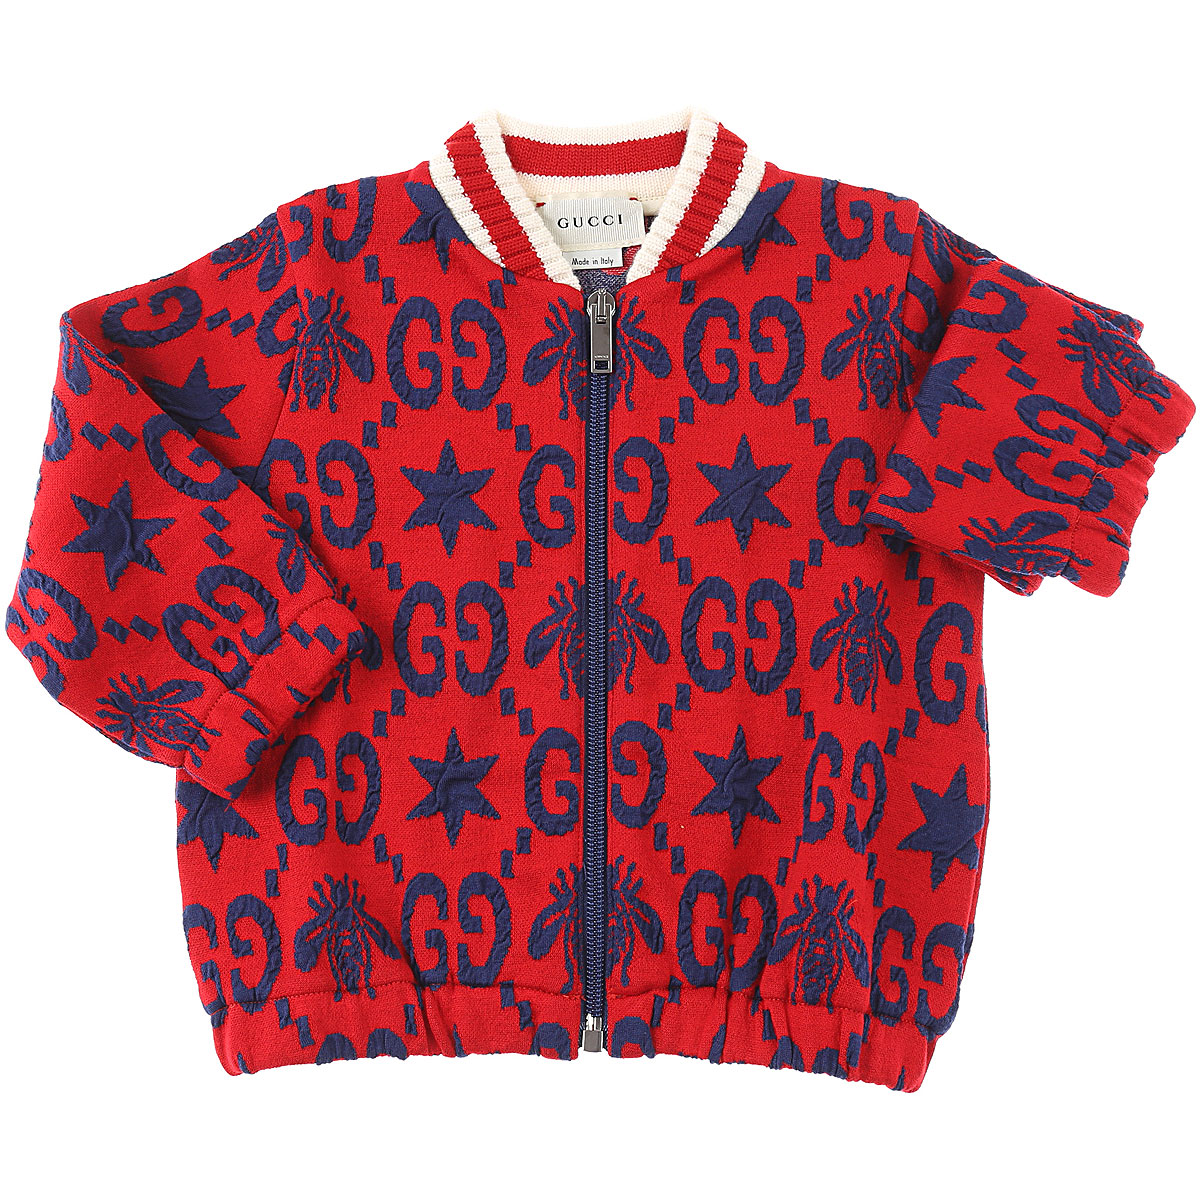 Gucci Baby Sweatshirts & Hoodies for Boys On Sale, Red, Cotton, 2019, 18M 3M 9M